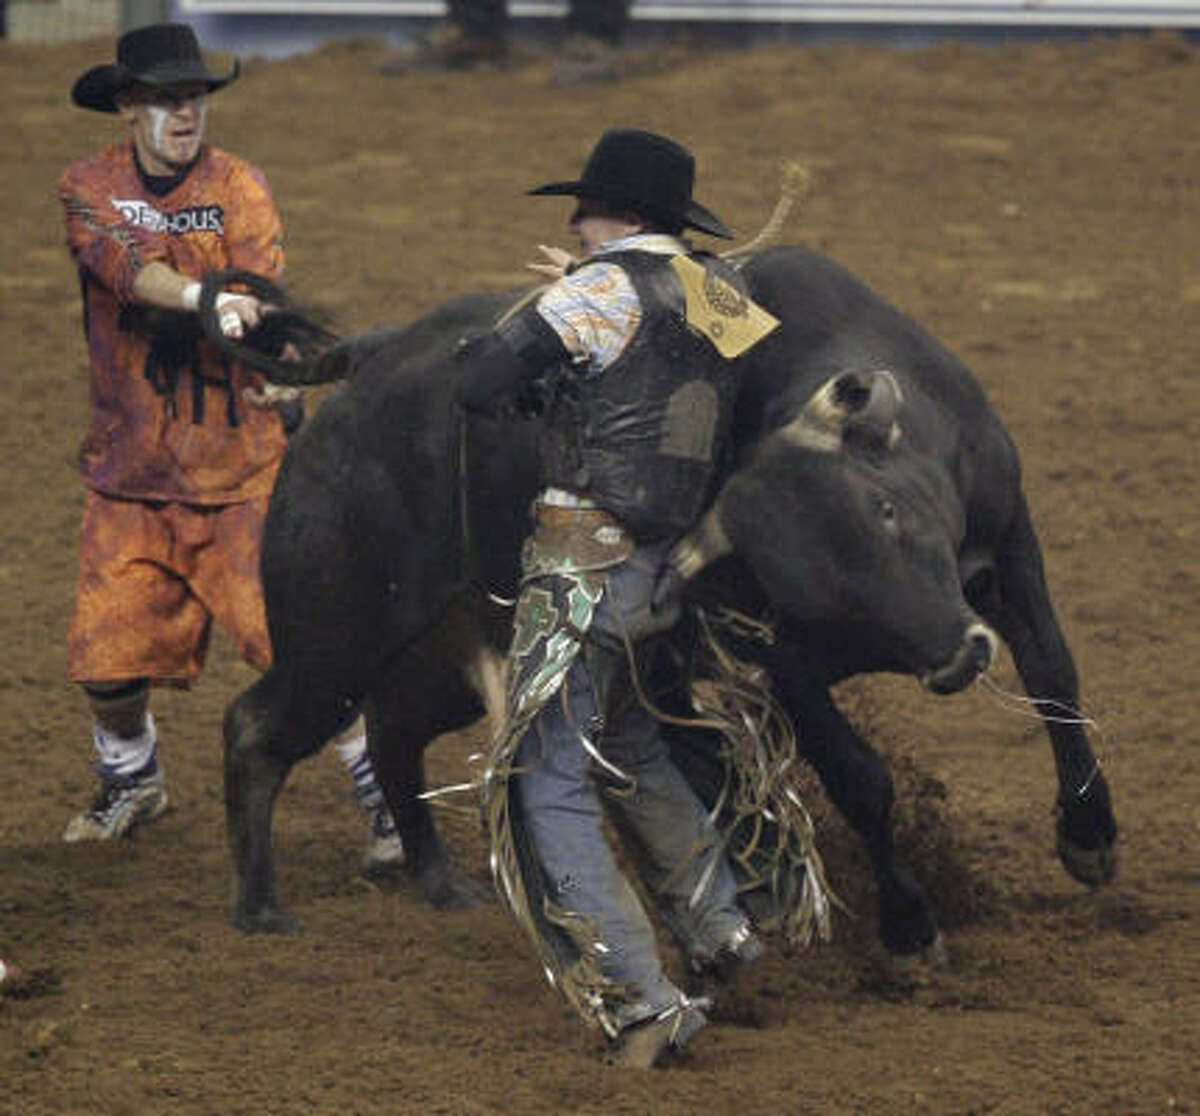 Bullfighter Cory Wall works to untangle Luke Haught after he was bucked off a bull named Razorback during Xtreme Bulls at the Houston Livestock Show and Rodeo.